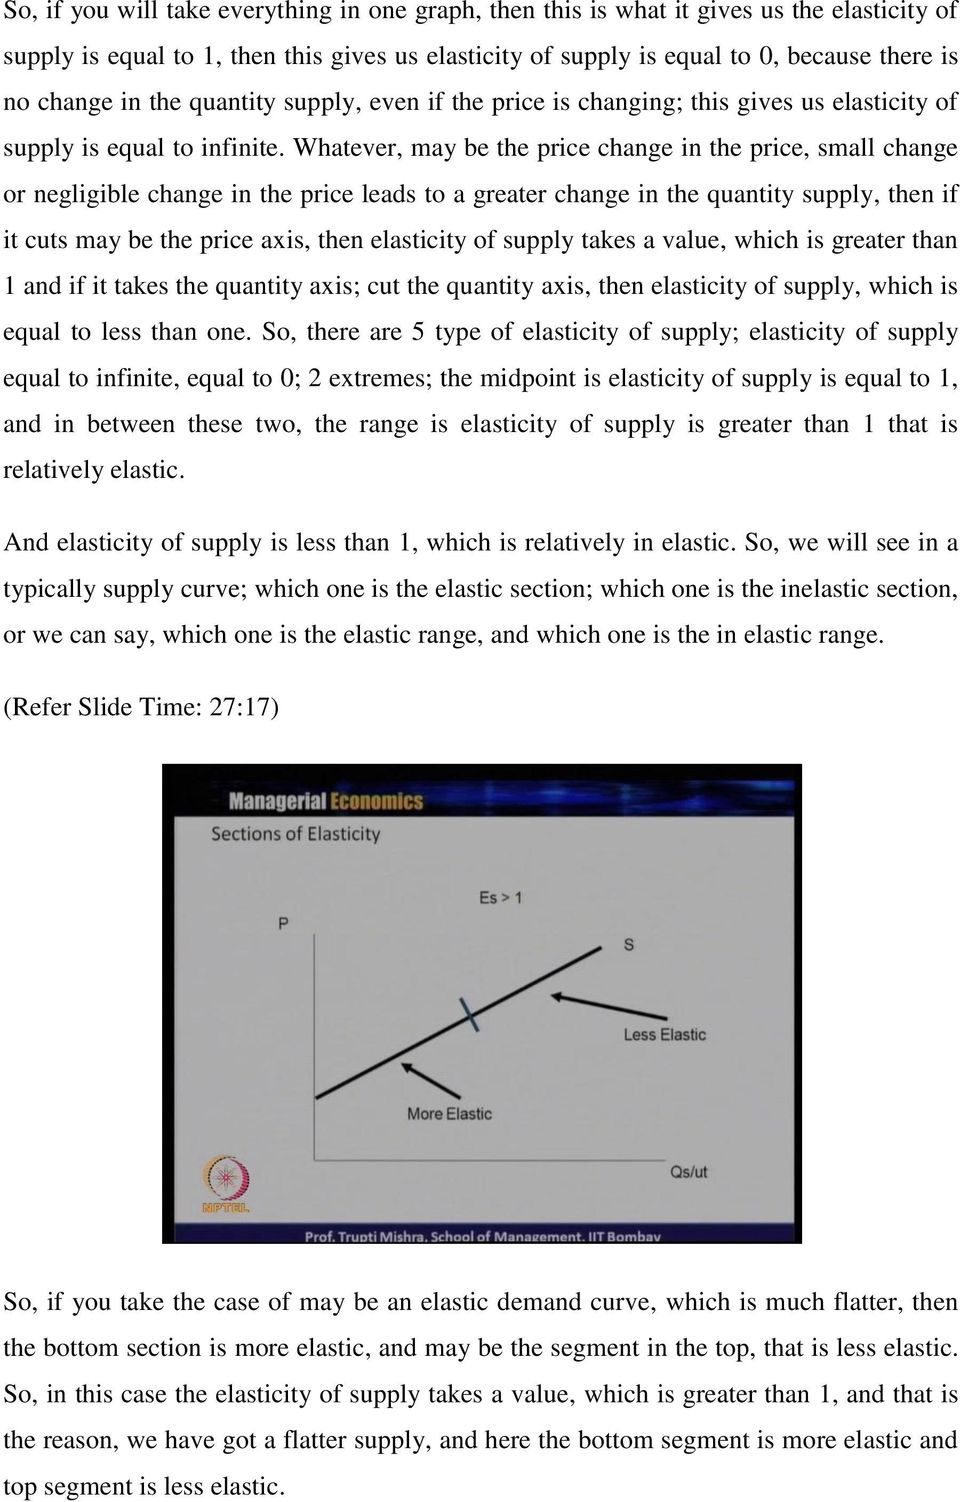 Whatever, may be the price change in the price, small change or negligible change in the price leads to a greater change in the quantity supply, then if it cuts may be the price axis, then elasticity